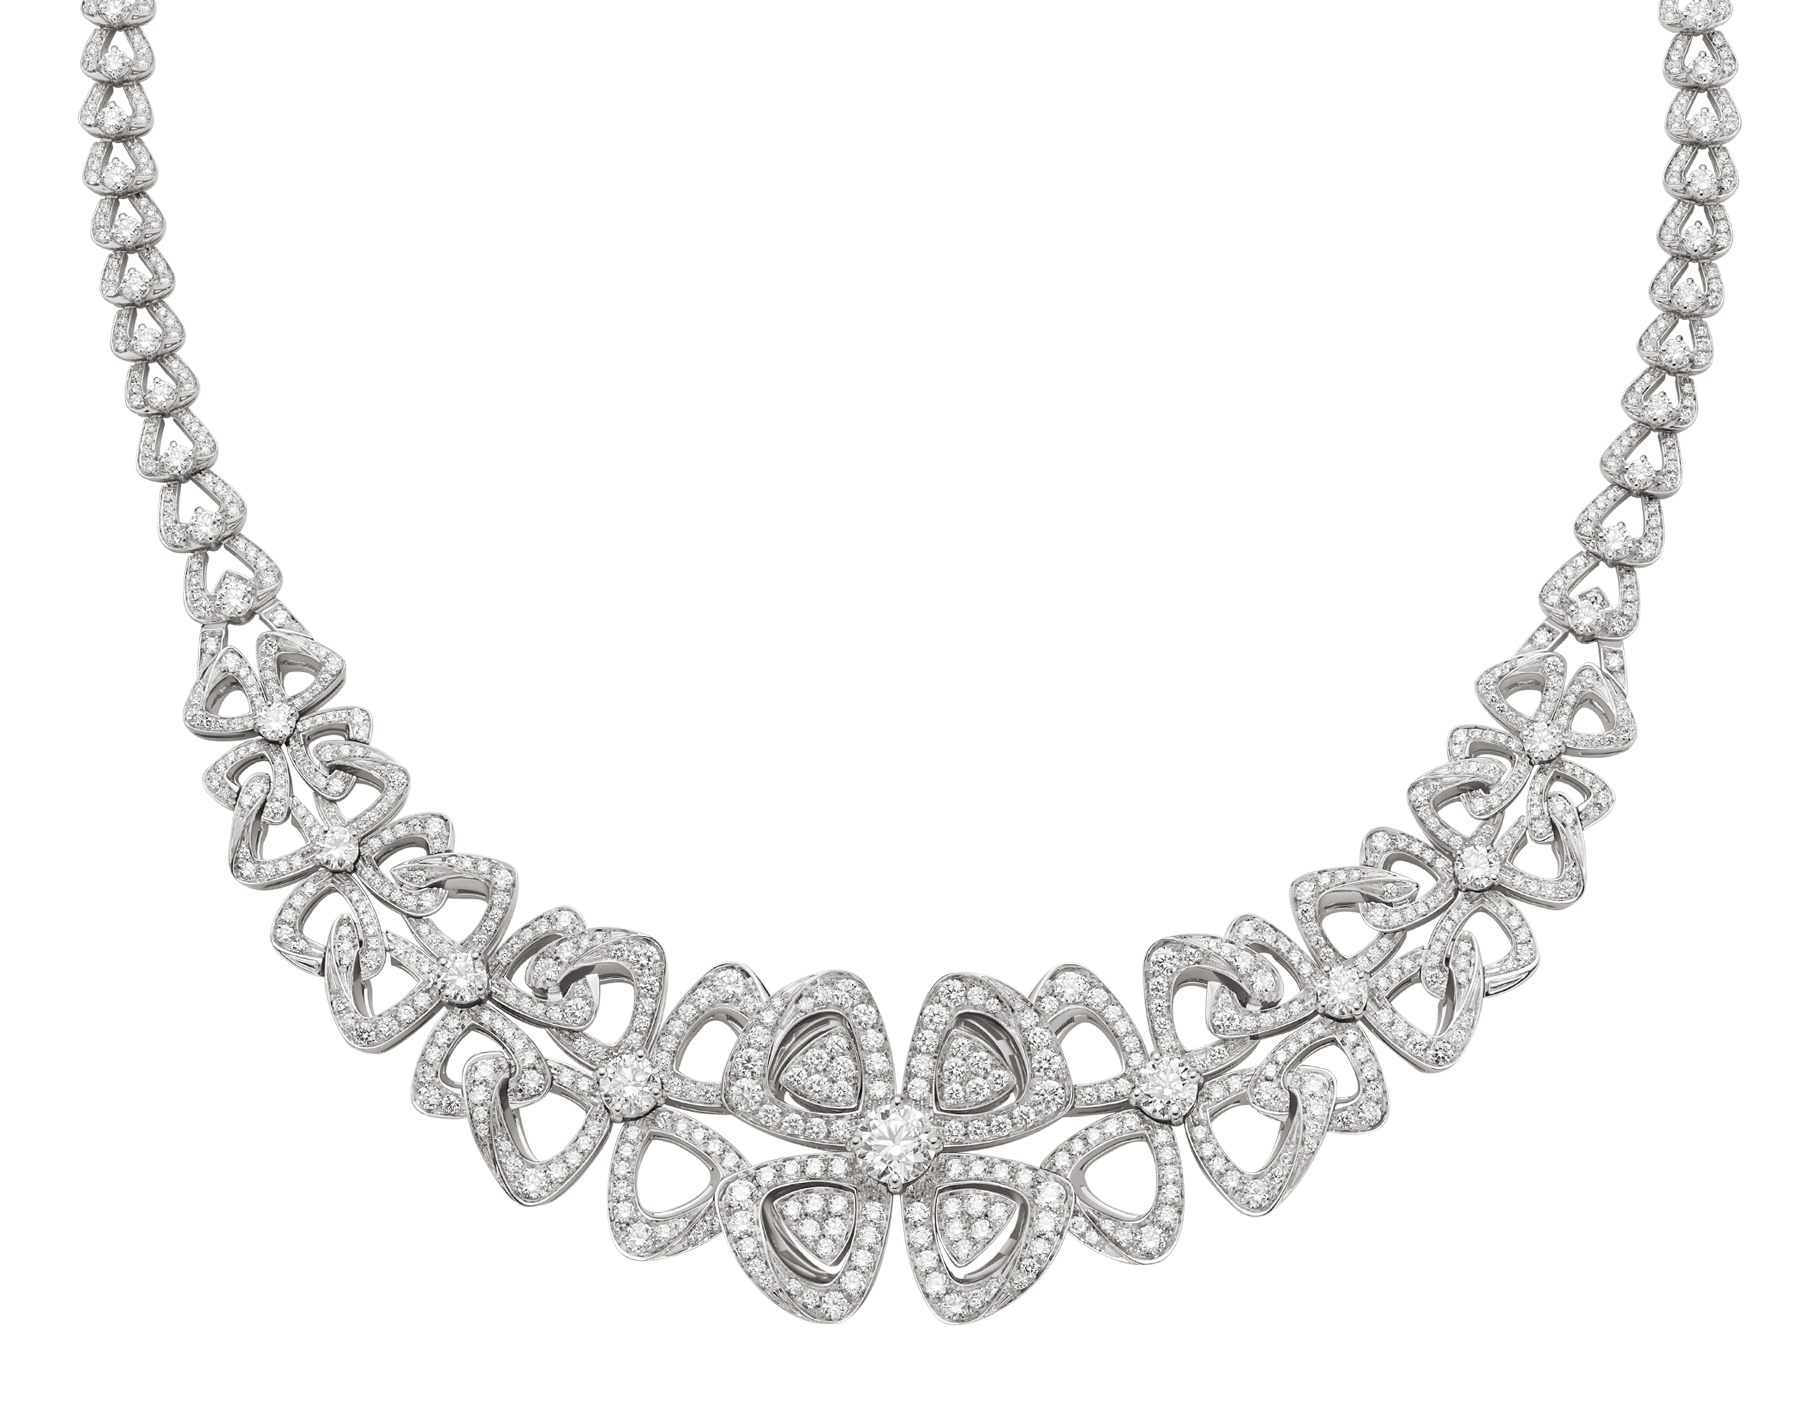 Fiorever 18 kt white gold necklace set with round brilliant-cut diamonds and pavé diamonds. 356934 image 1